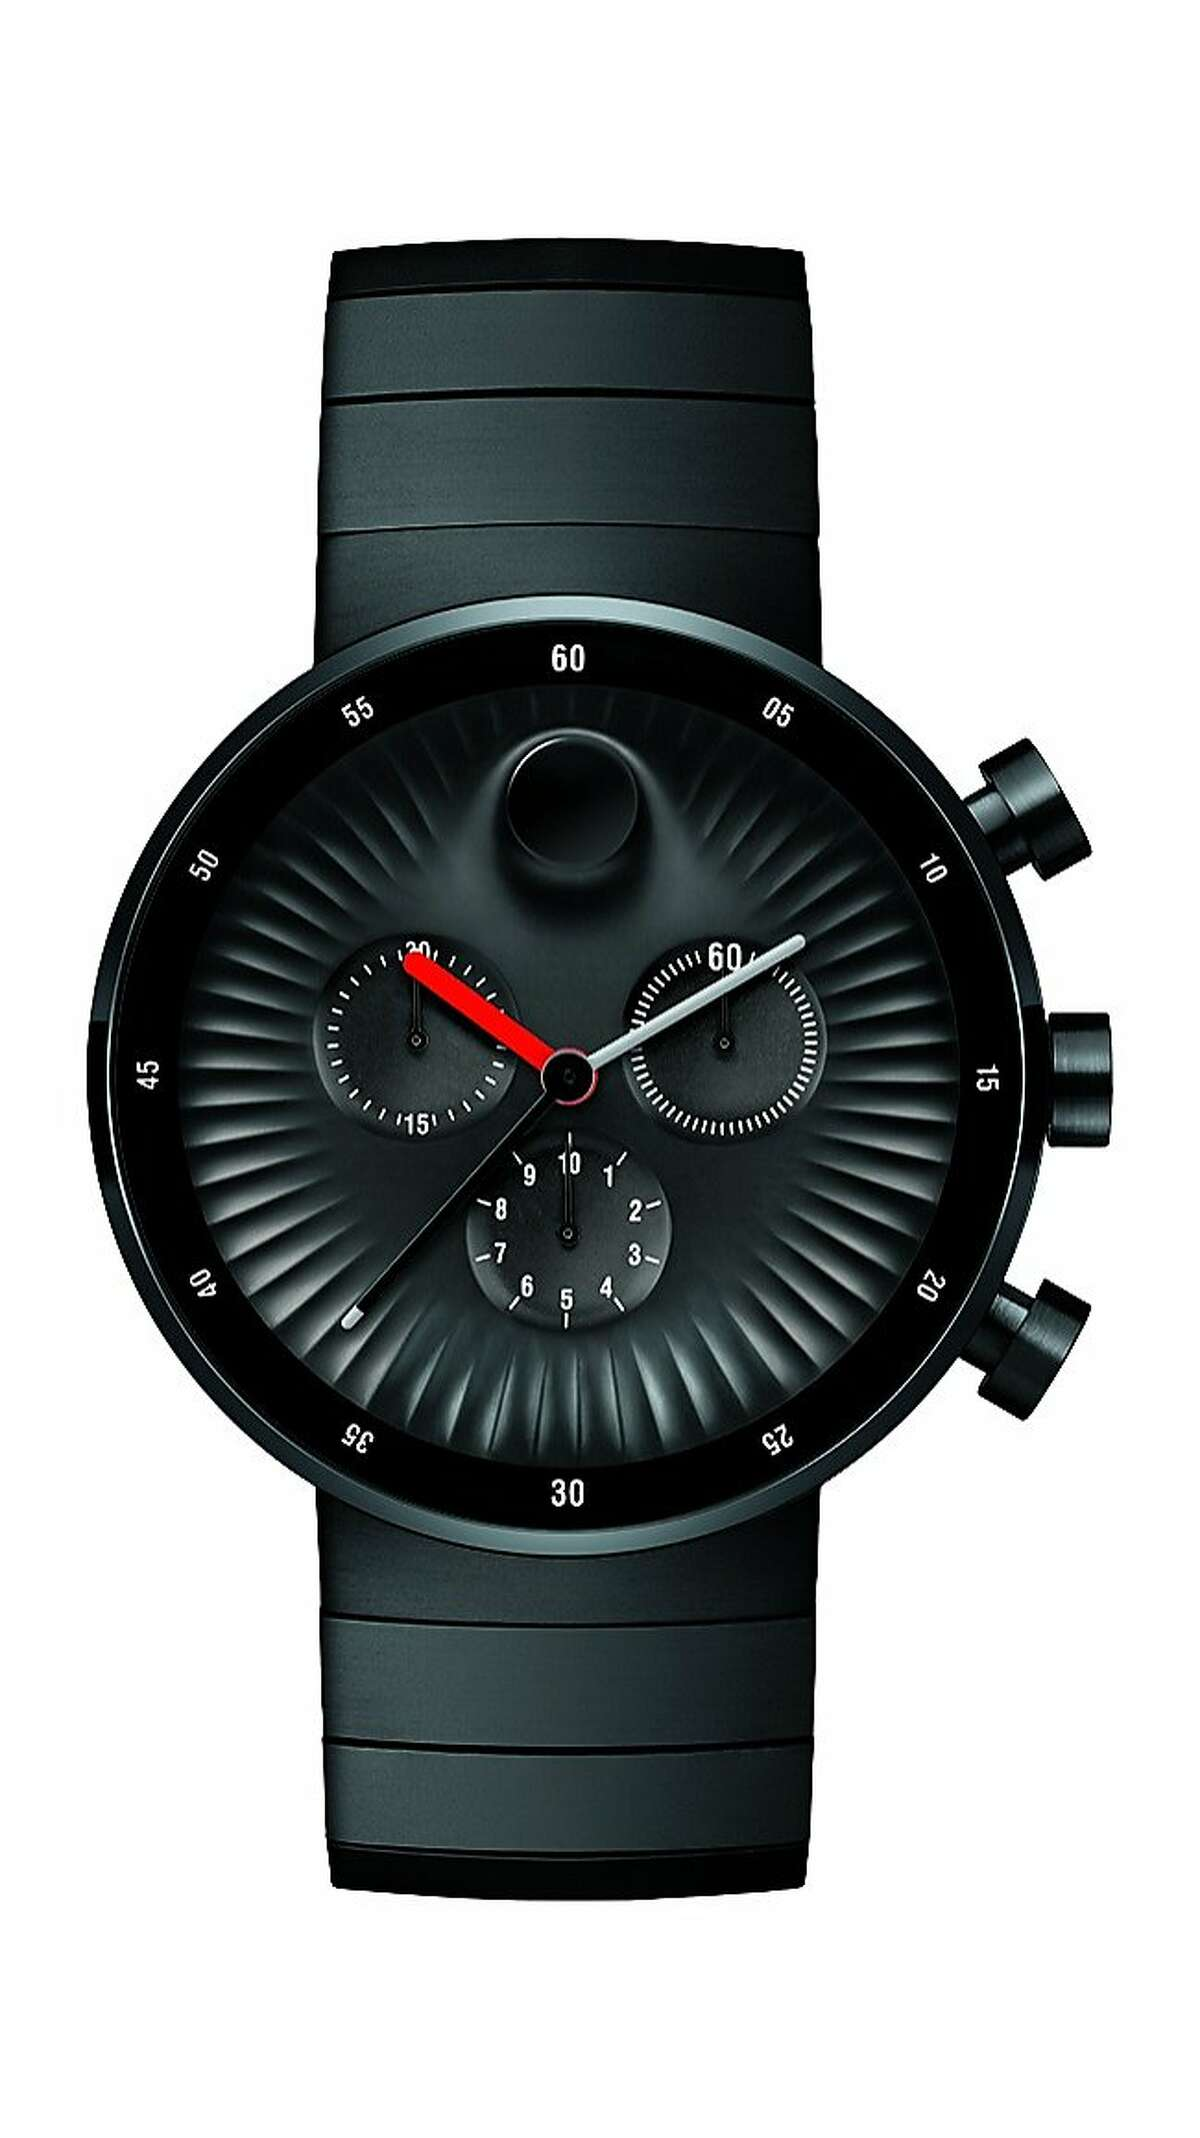 Swiss watchmaker Movado and industrial designer Yves Behar have collaborated on a new timepiece collection called Movado Edge.(( FOLLOWED BY INDIVIDUAL DETAILS BELOW.)) Name: Movado Edge SKU: 3680011 Materials: 42 mm black PVD-finished stainless steel case, concave sandblasted black aluminum dial with raised polished tonal dot, sculpted ray-textured edge, Arabic minute ring, 3 glossy black timing subdials, matte red hour/glossy gray minute/black seconds hands, brushed black PVD-finished stainless steel link bracelet with push-button deployment clasp. Price: $1195. Credit: Movado